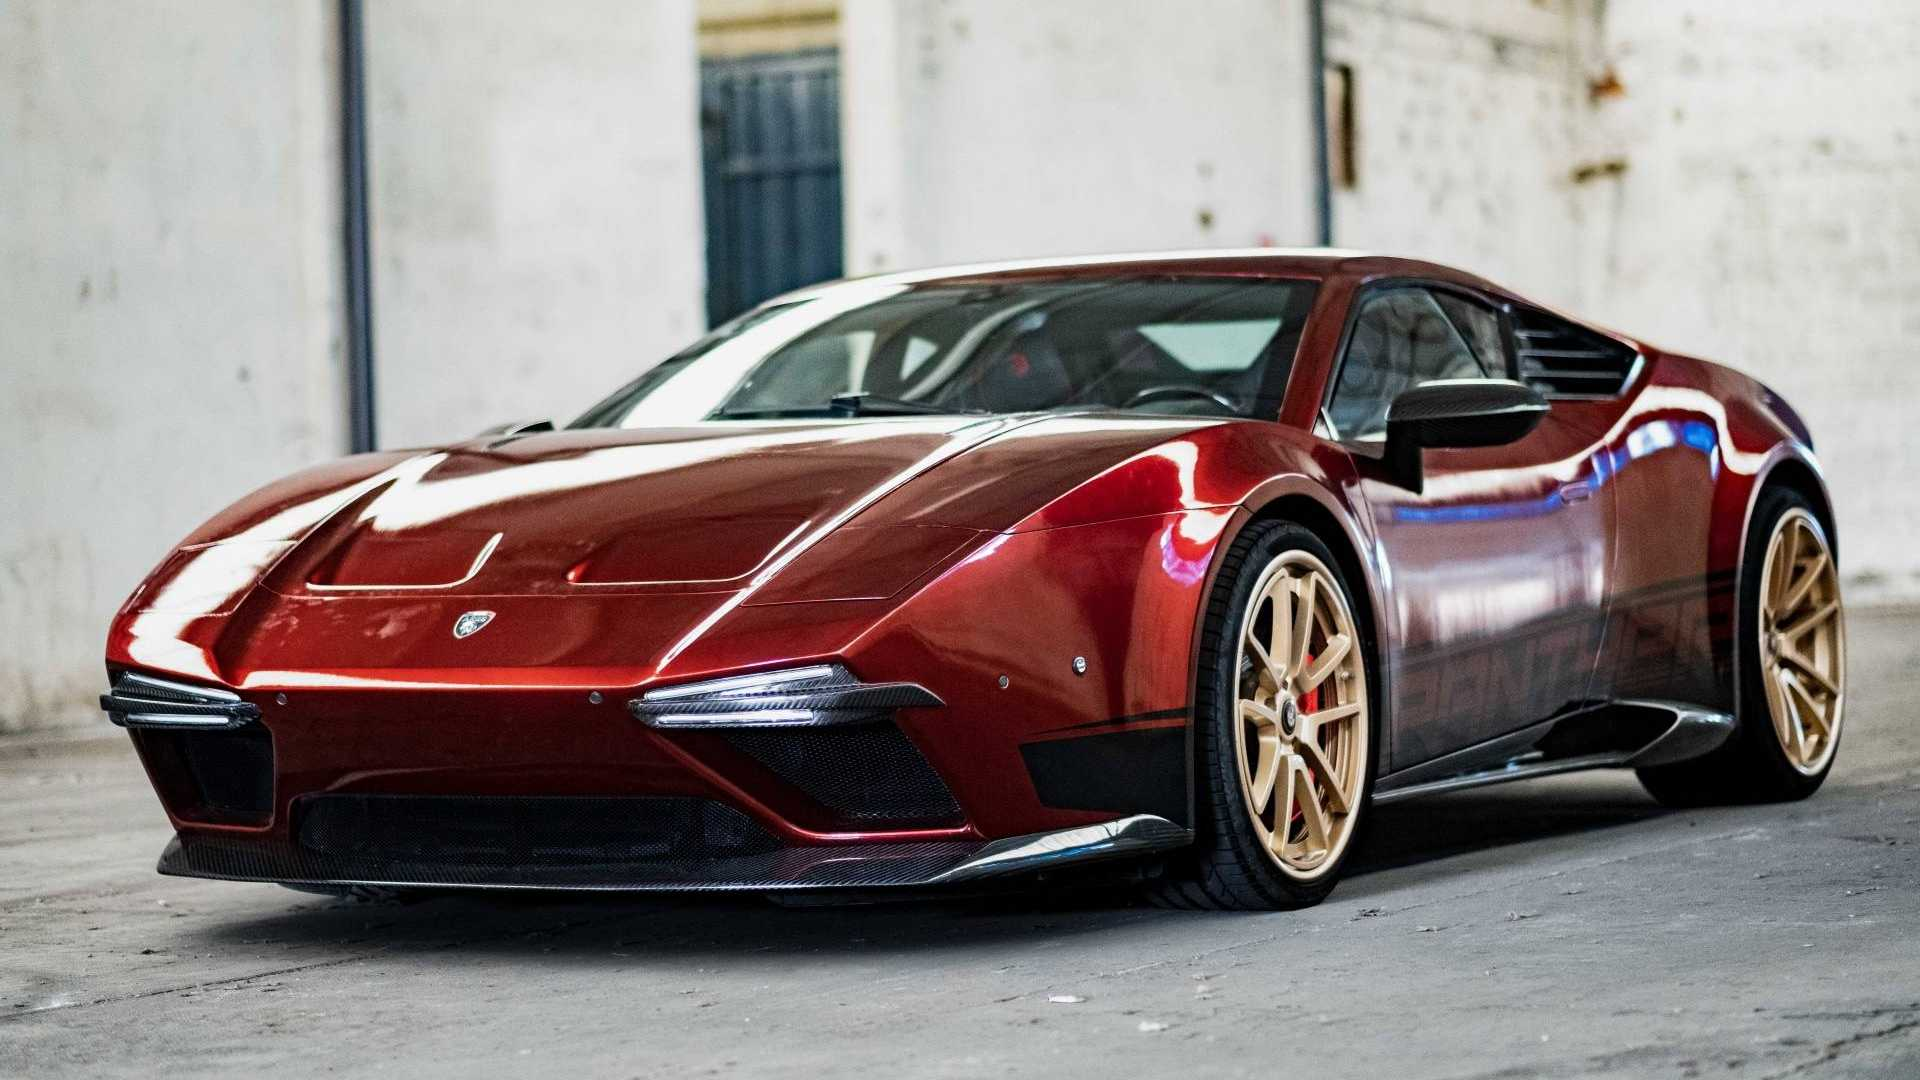 600 PS Ares Panther Lamborghini Huracan Tuning 10 Offiziell: Project Panther & Pony vom Tuner ARES Performance